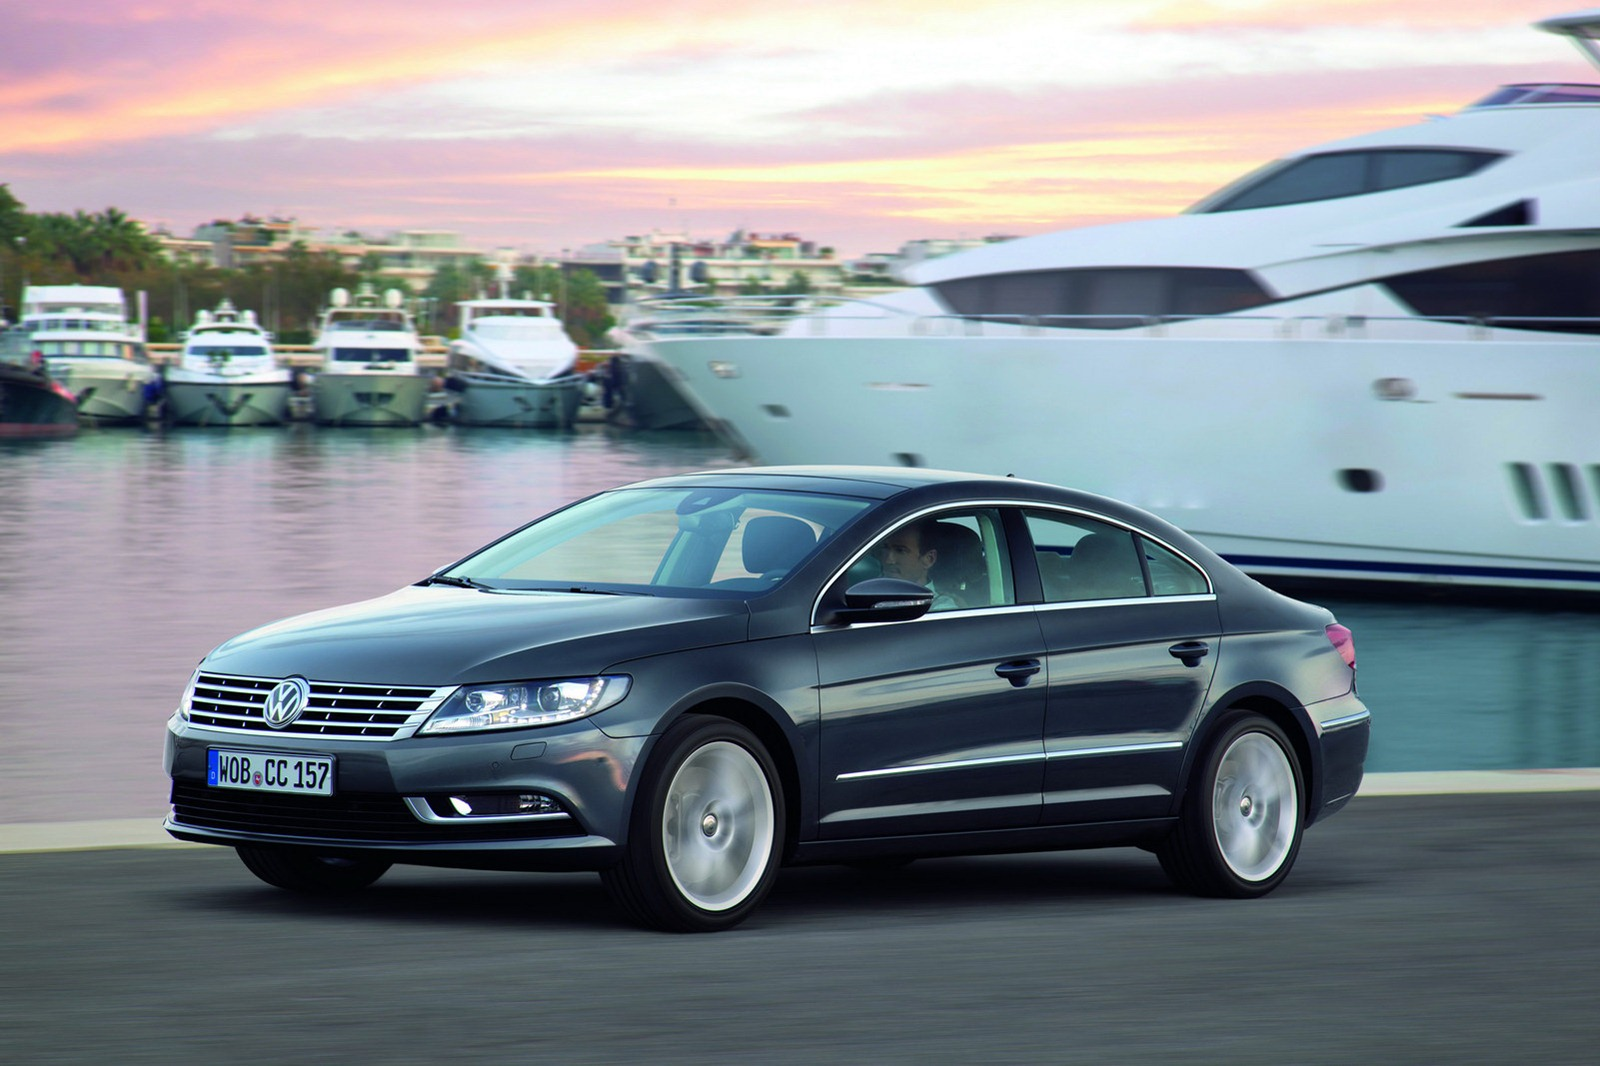 VW CC photo 13